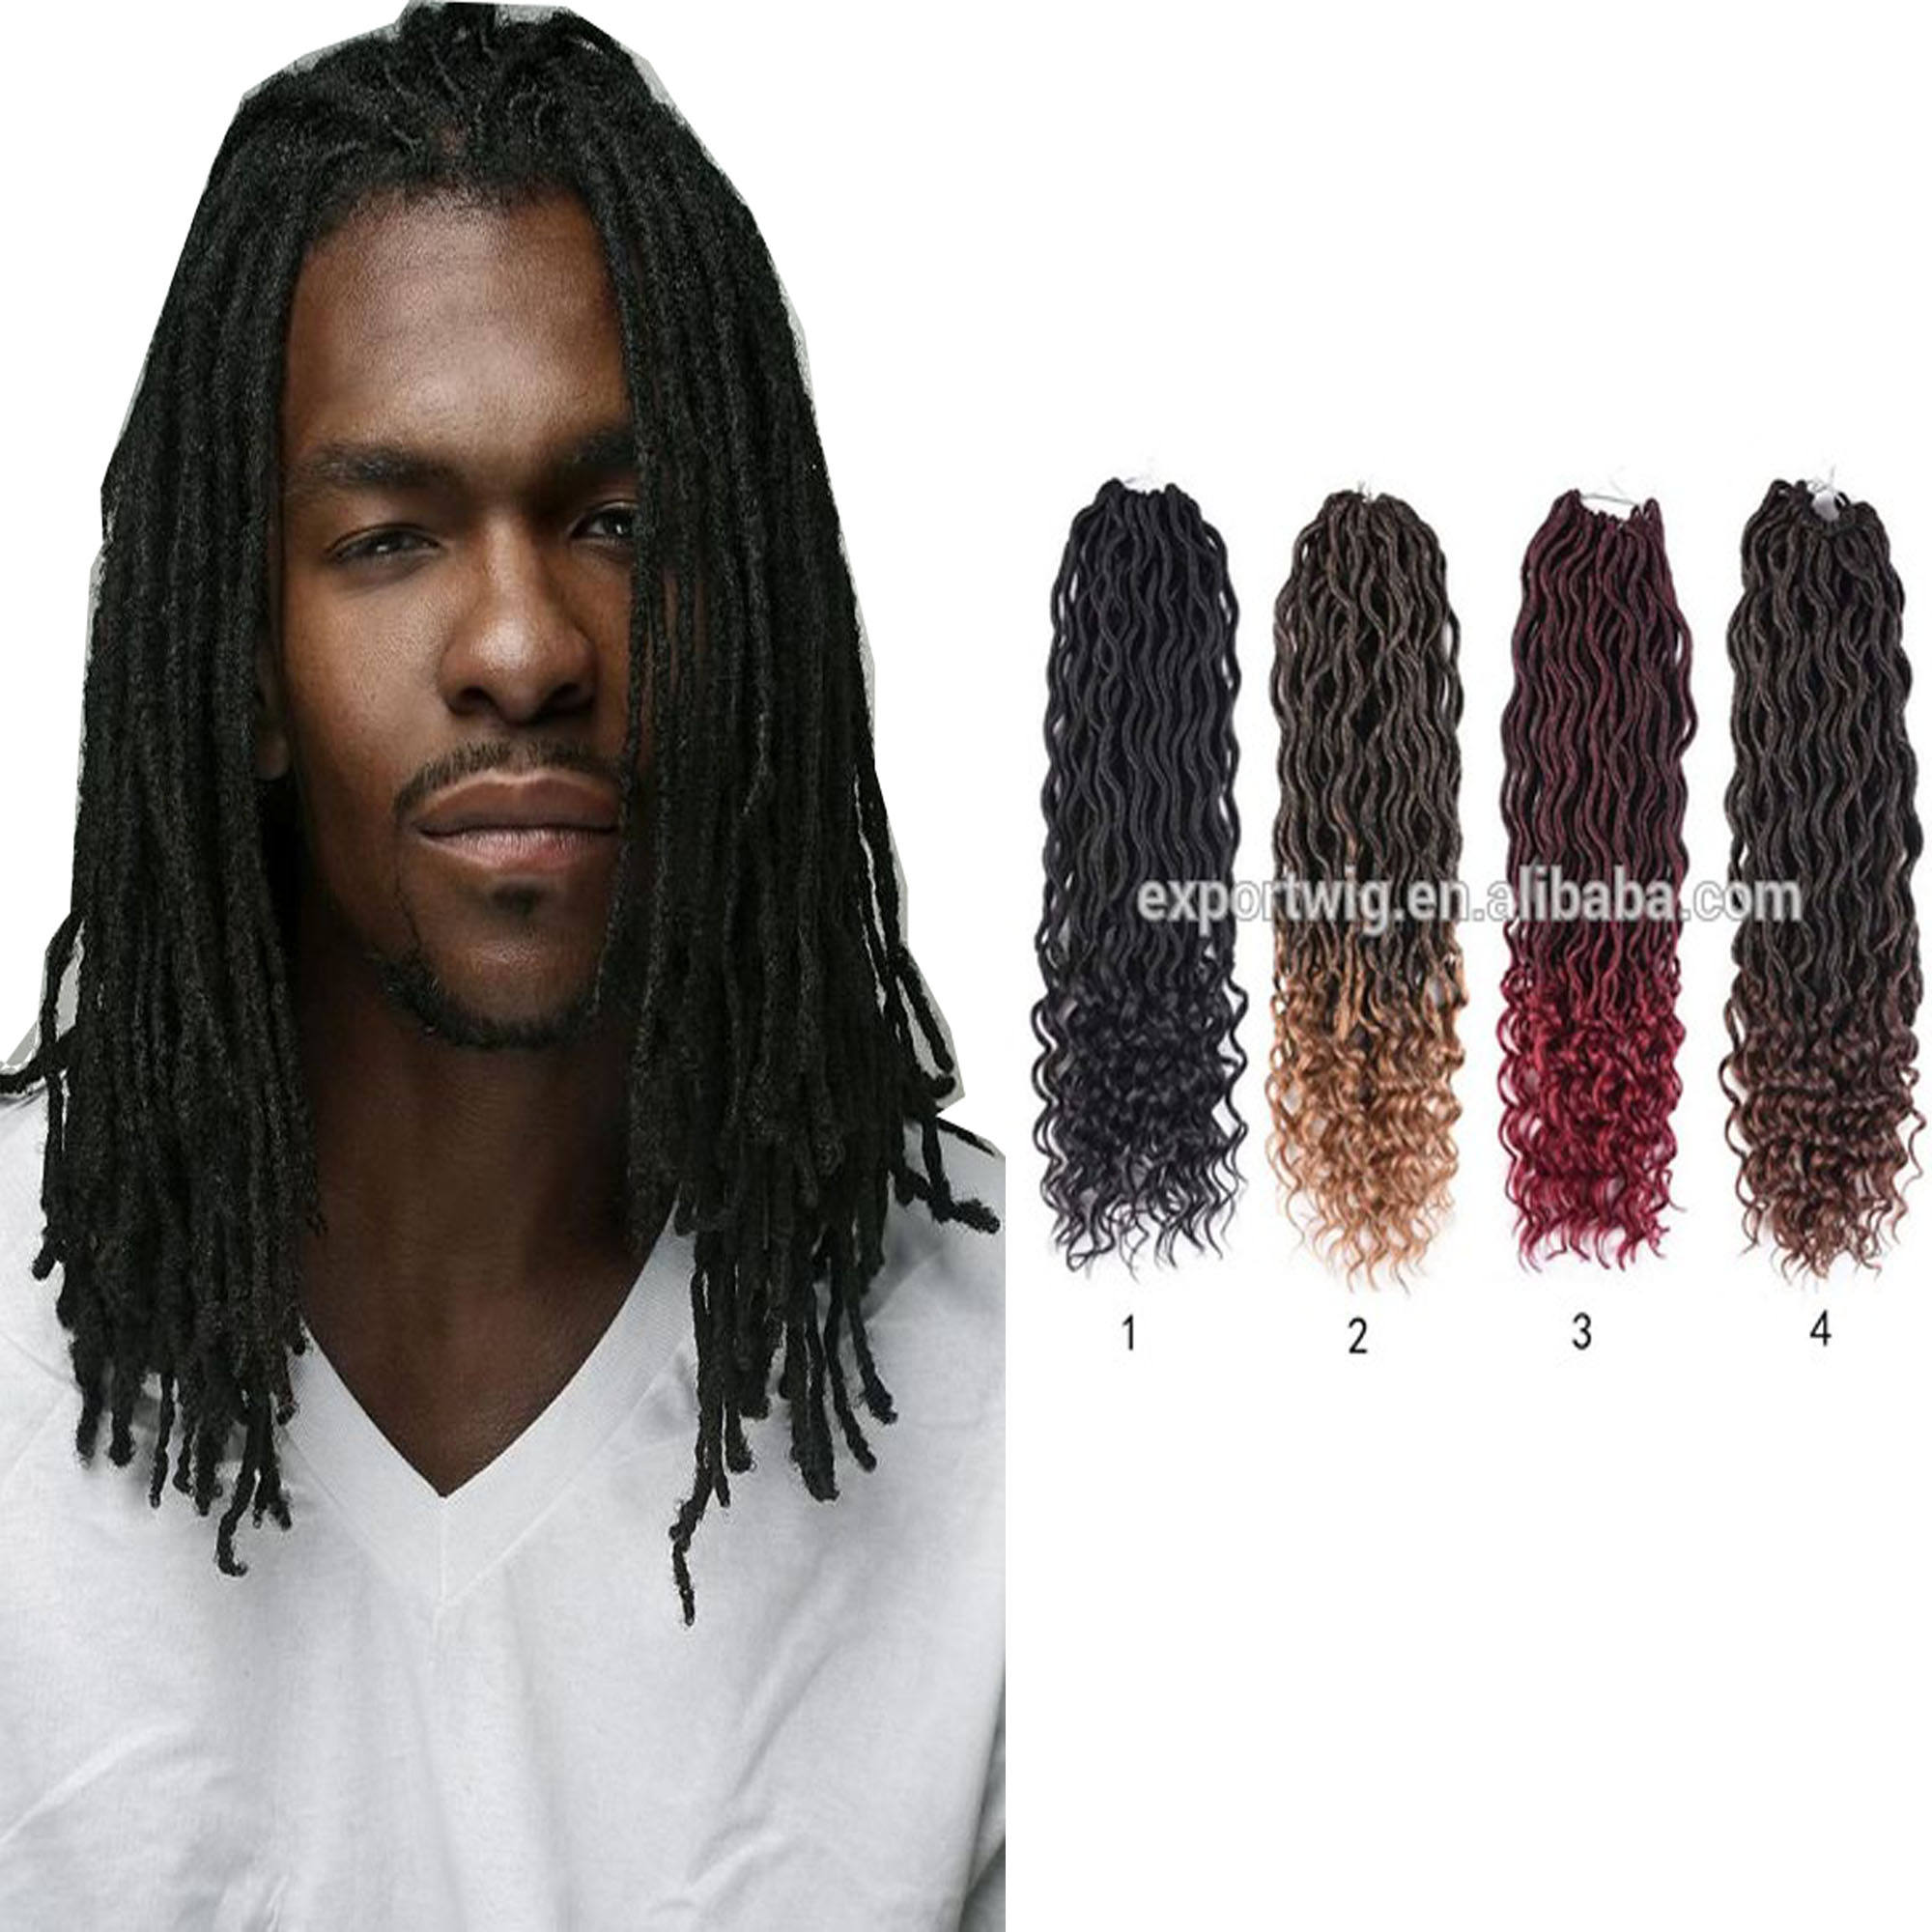 Wholesale Types Of Synthetic Extension Kinky Braiding Locs Crochet Hair Piece Weave Dread Lock Bulk Dropshipping crochet locs